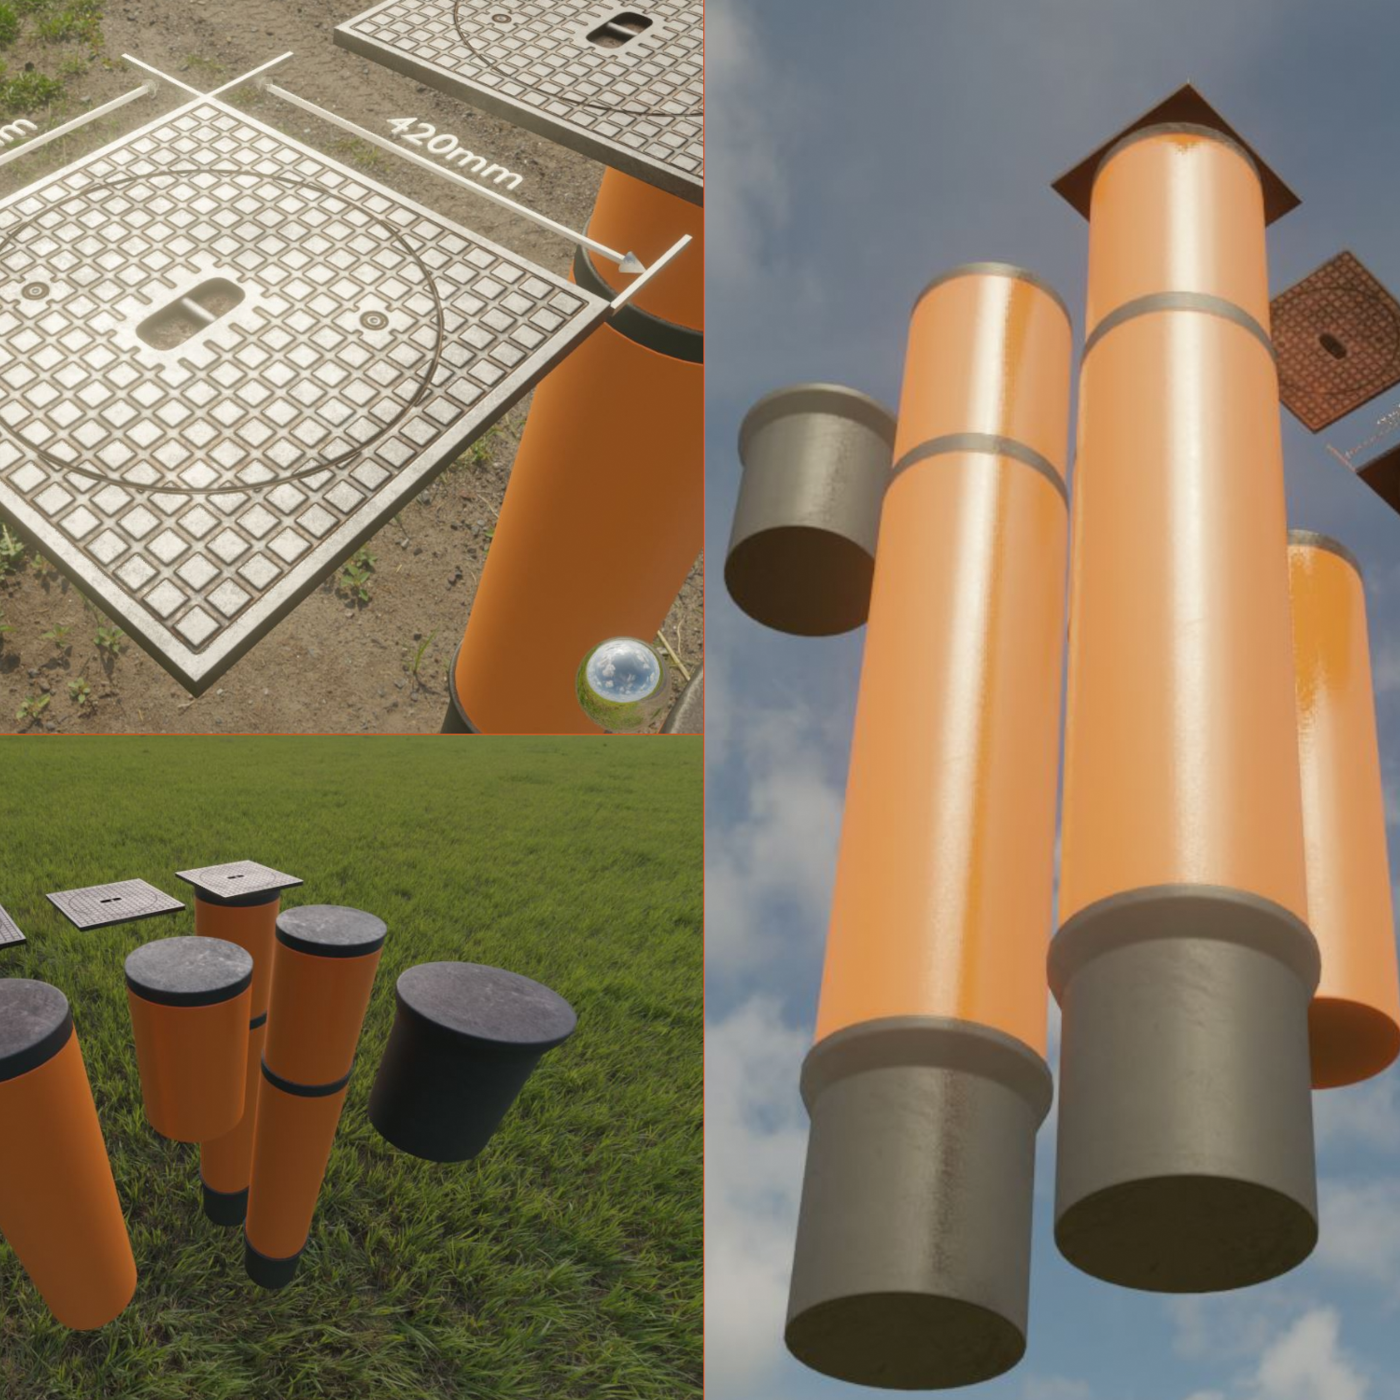 Sewer cover 5 with pipes for an external visualization of a house connection shaft (Blender-2.92 Eevee)